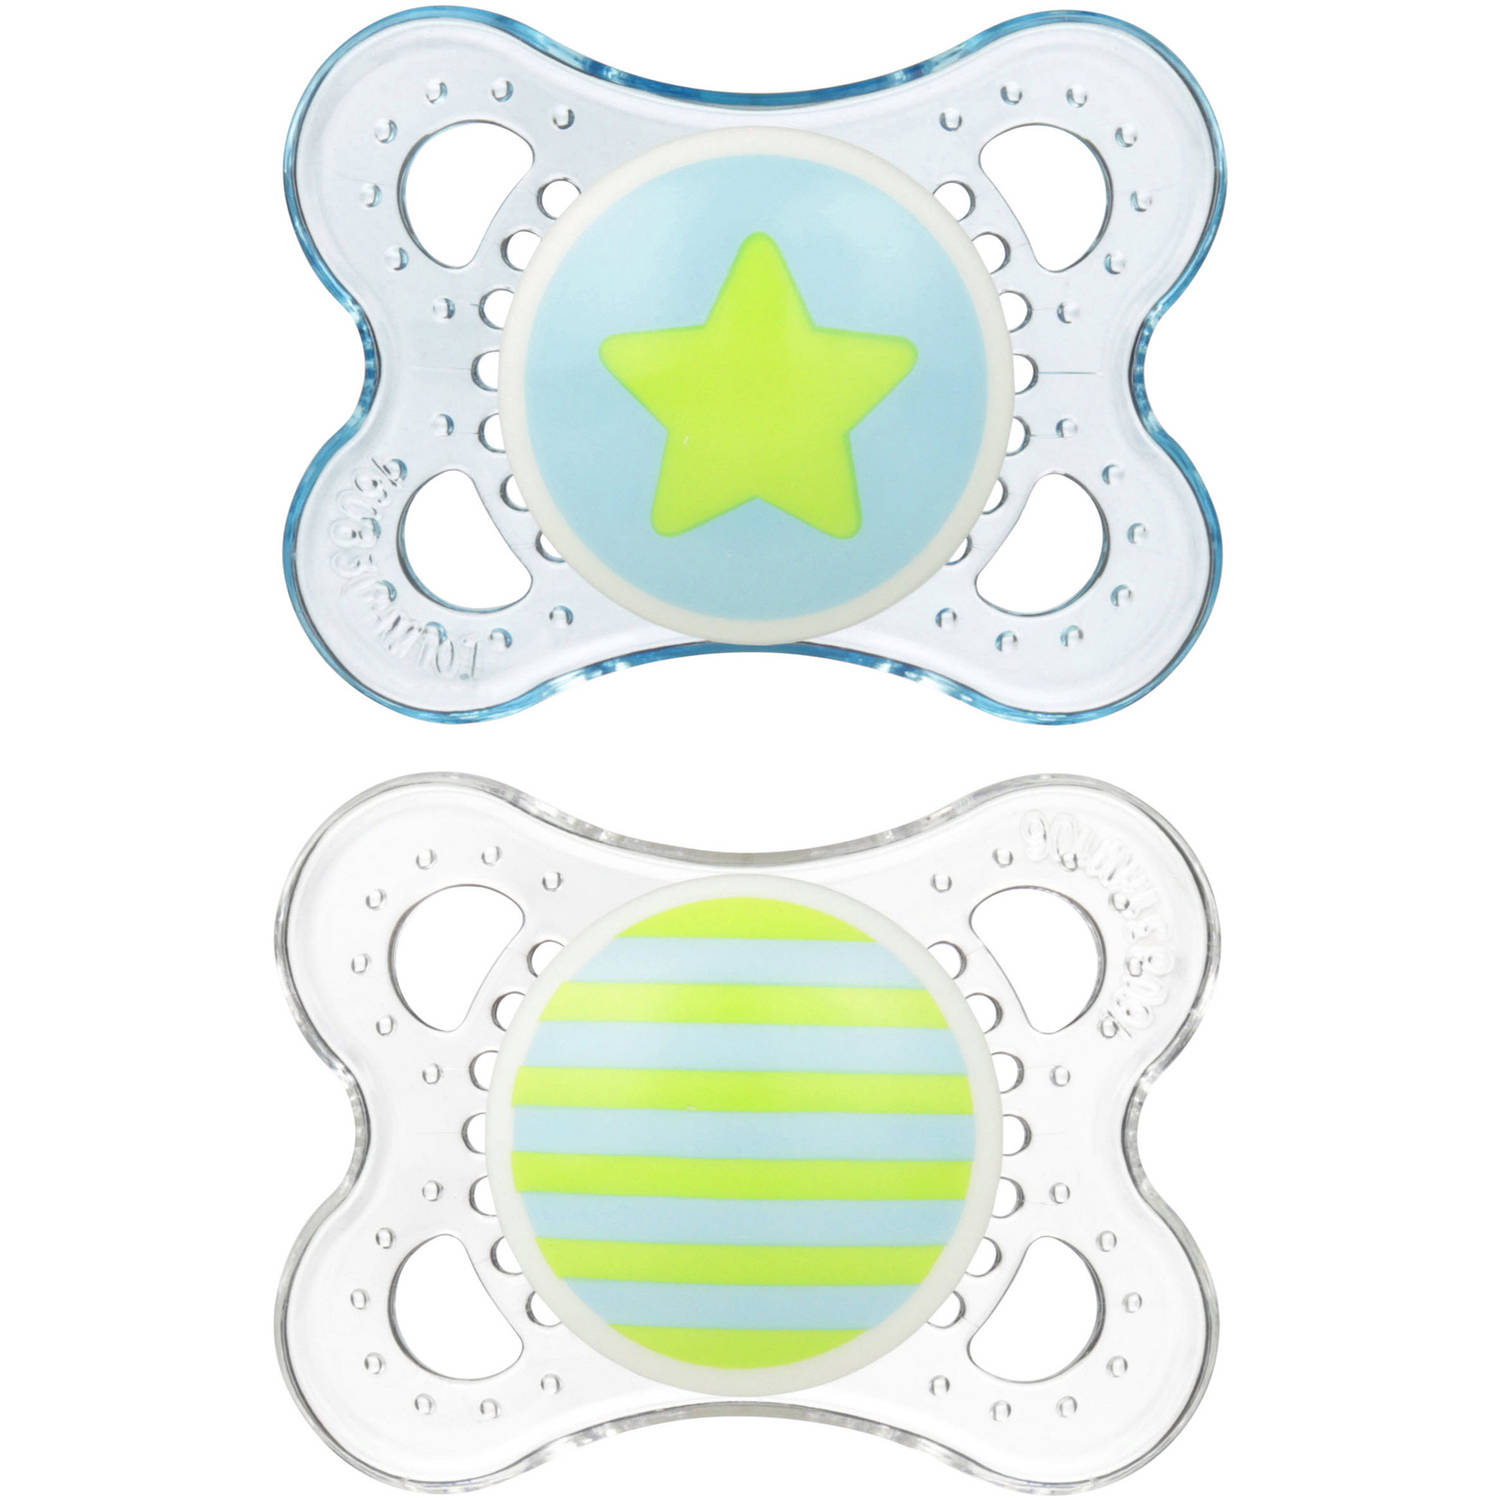 MAM Clear Orthodontic Pacifier, 0-6 Months, 2 Pacifiers, Boy by MAM